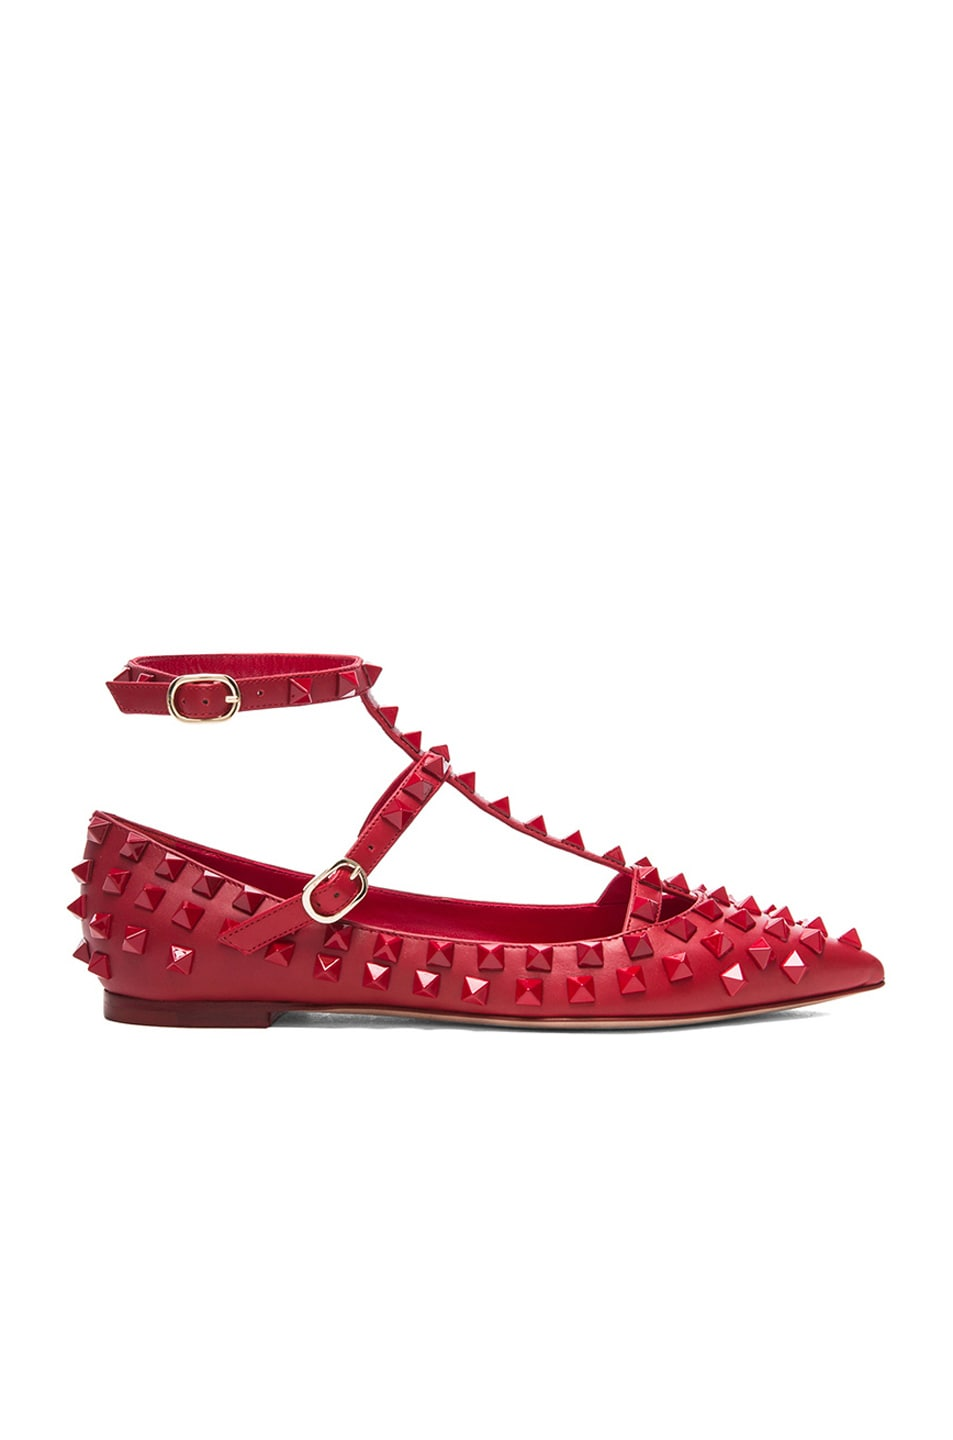 Image 1 of Valentino Rockstud All Over Leather Cage Flats in Rouge